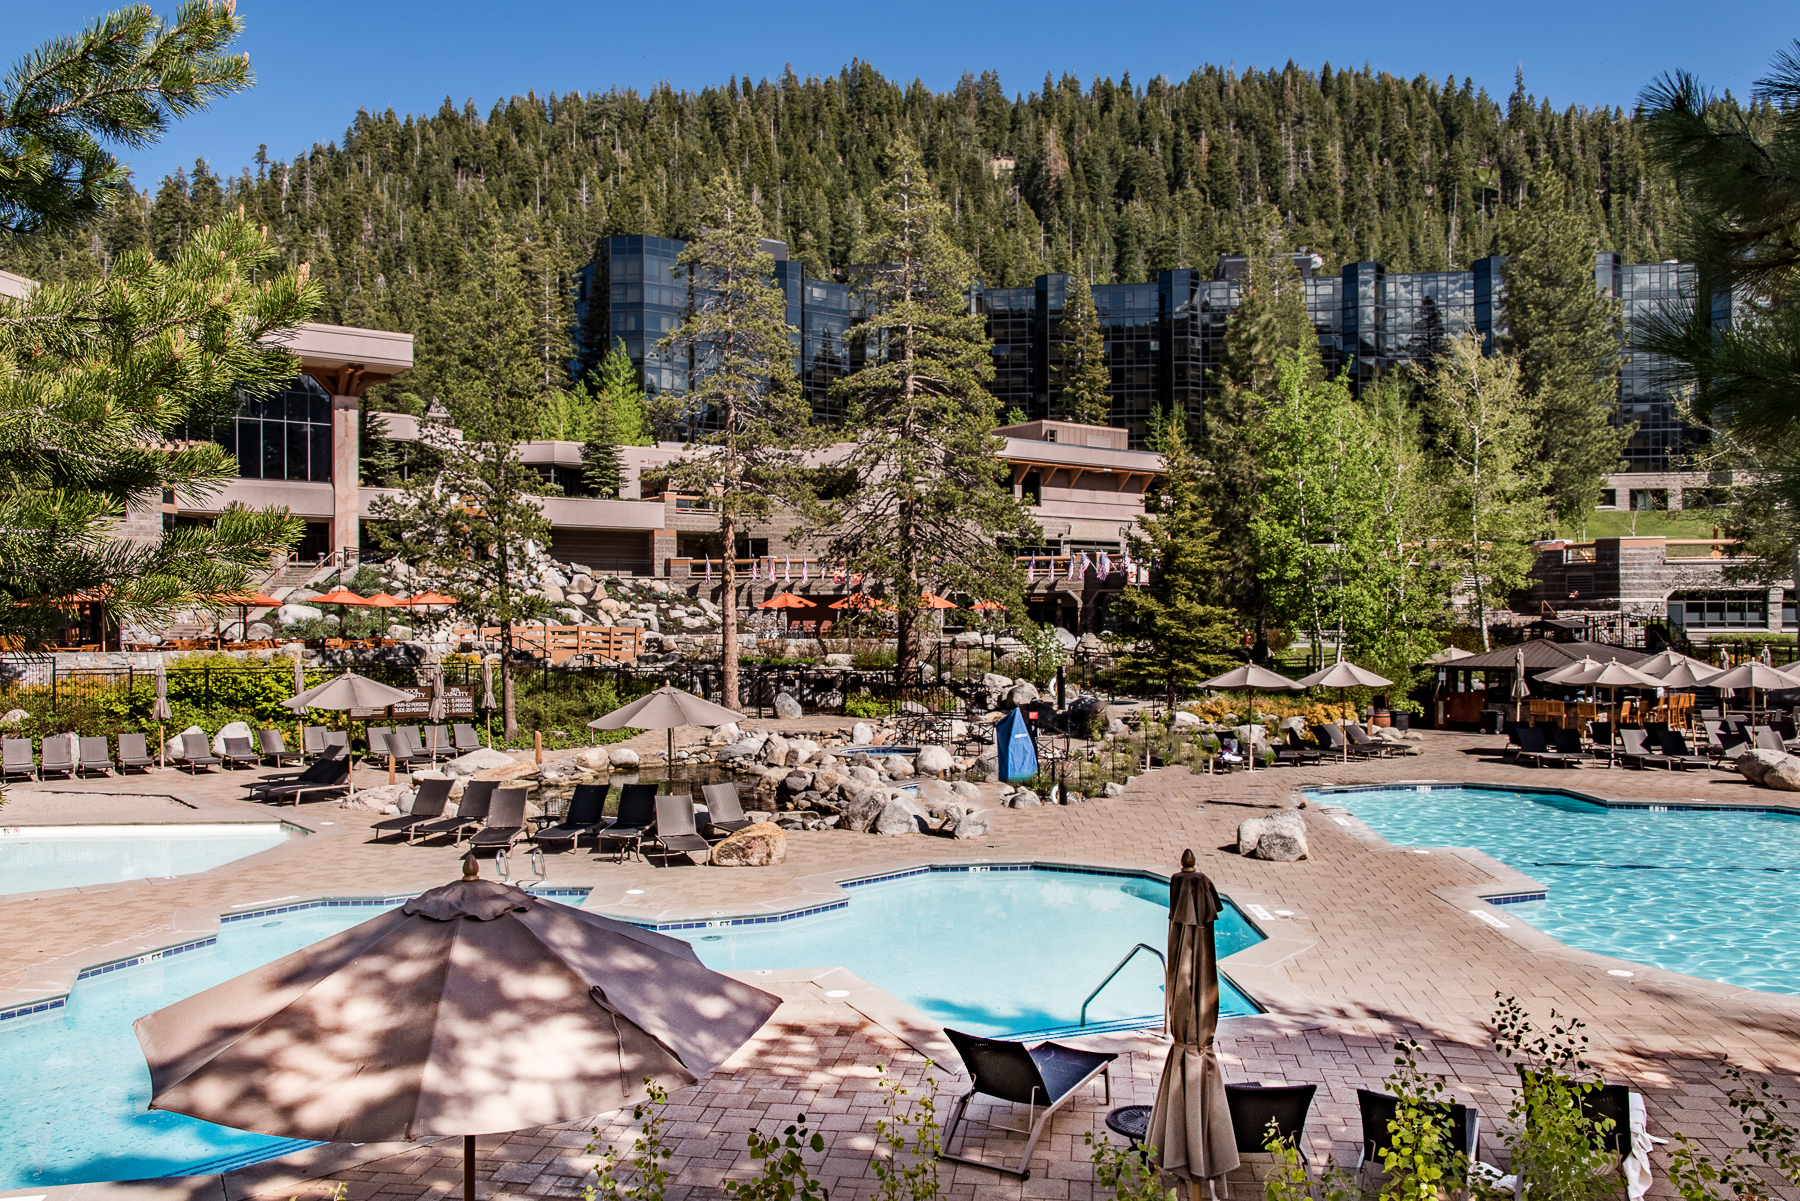 Image of The Resort at Squaw Creek